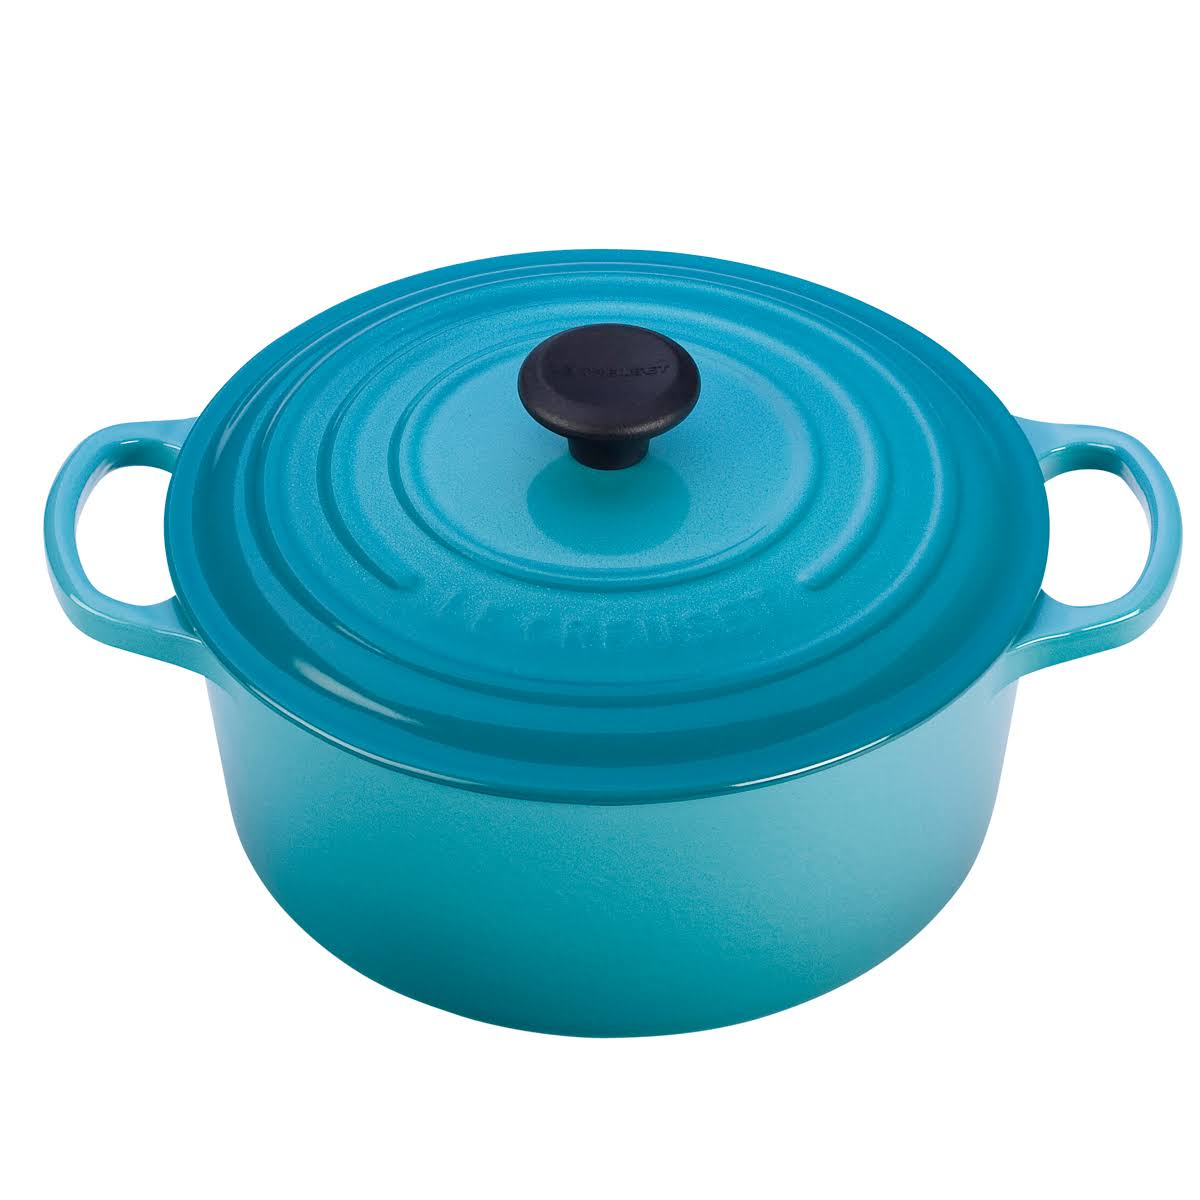 Le Creuset Enameled ast Iron Round French Oven - Caribbean, 3.5qt